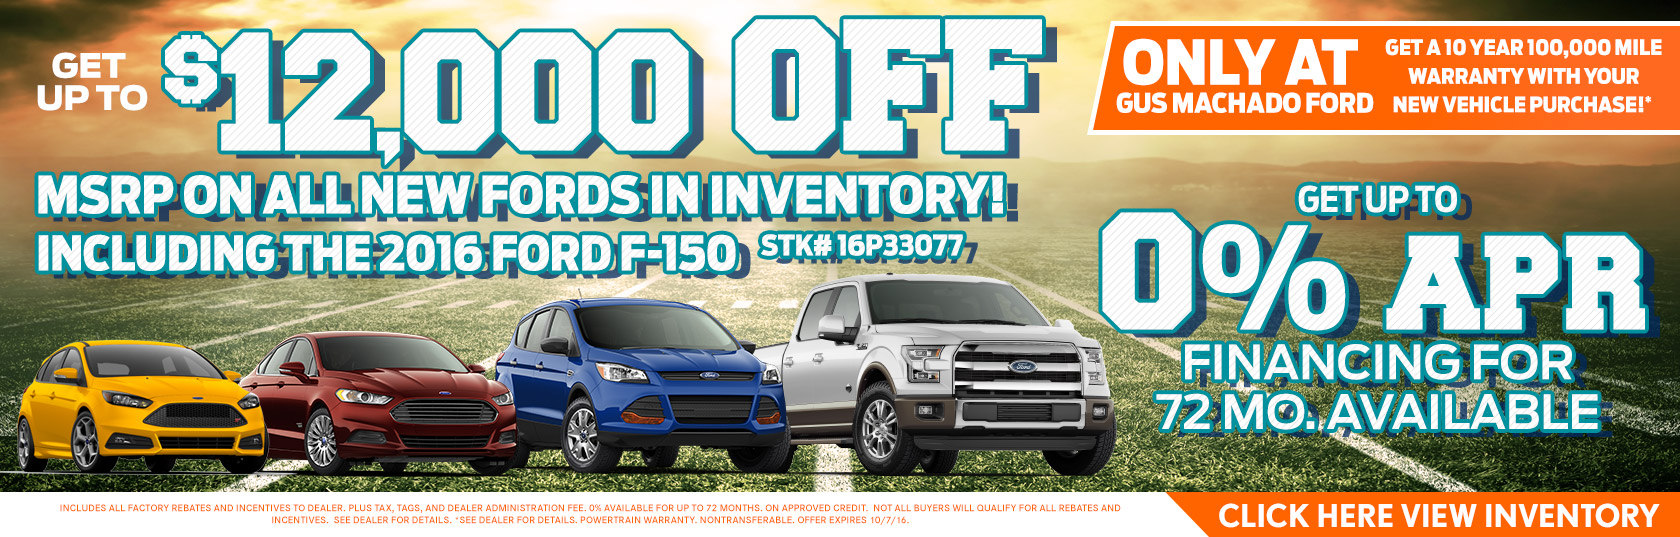 12 000 Off New Fords